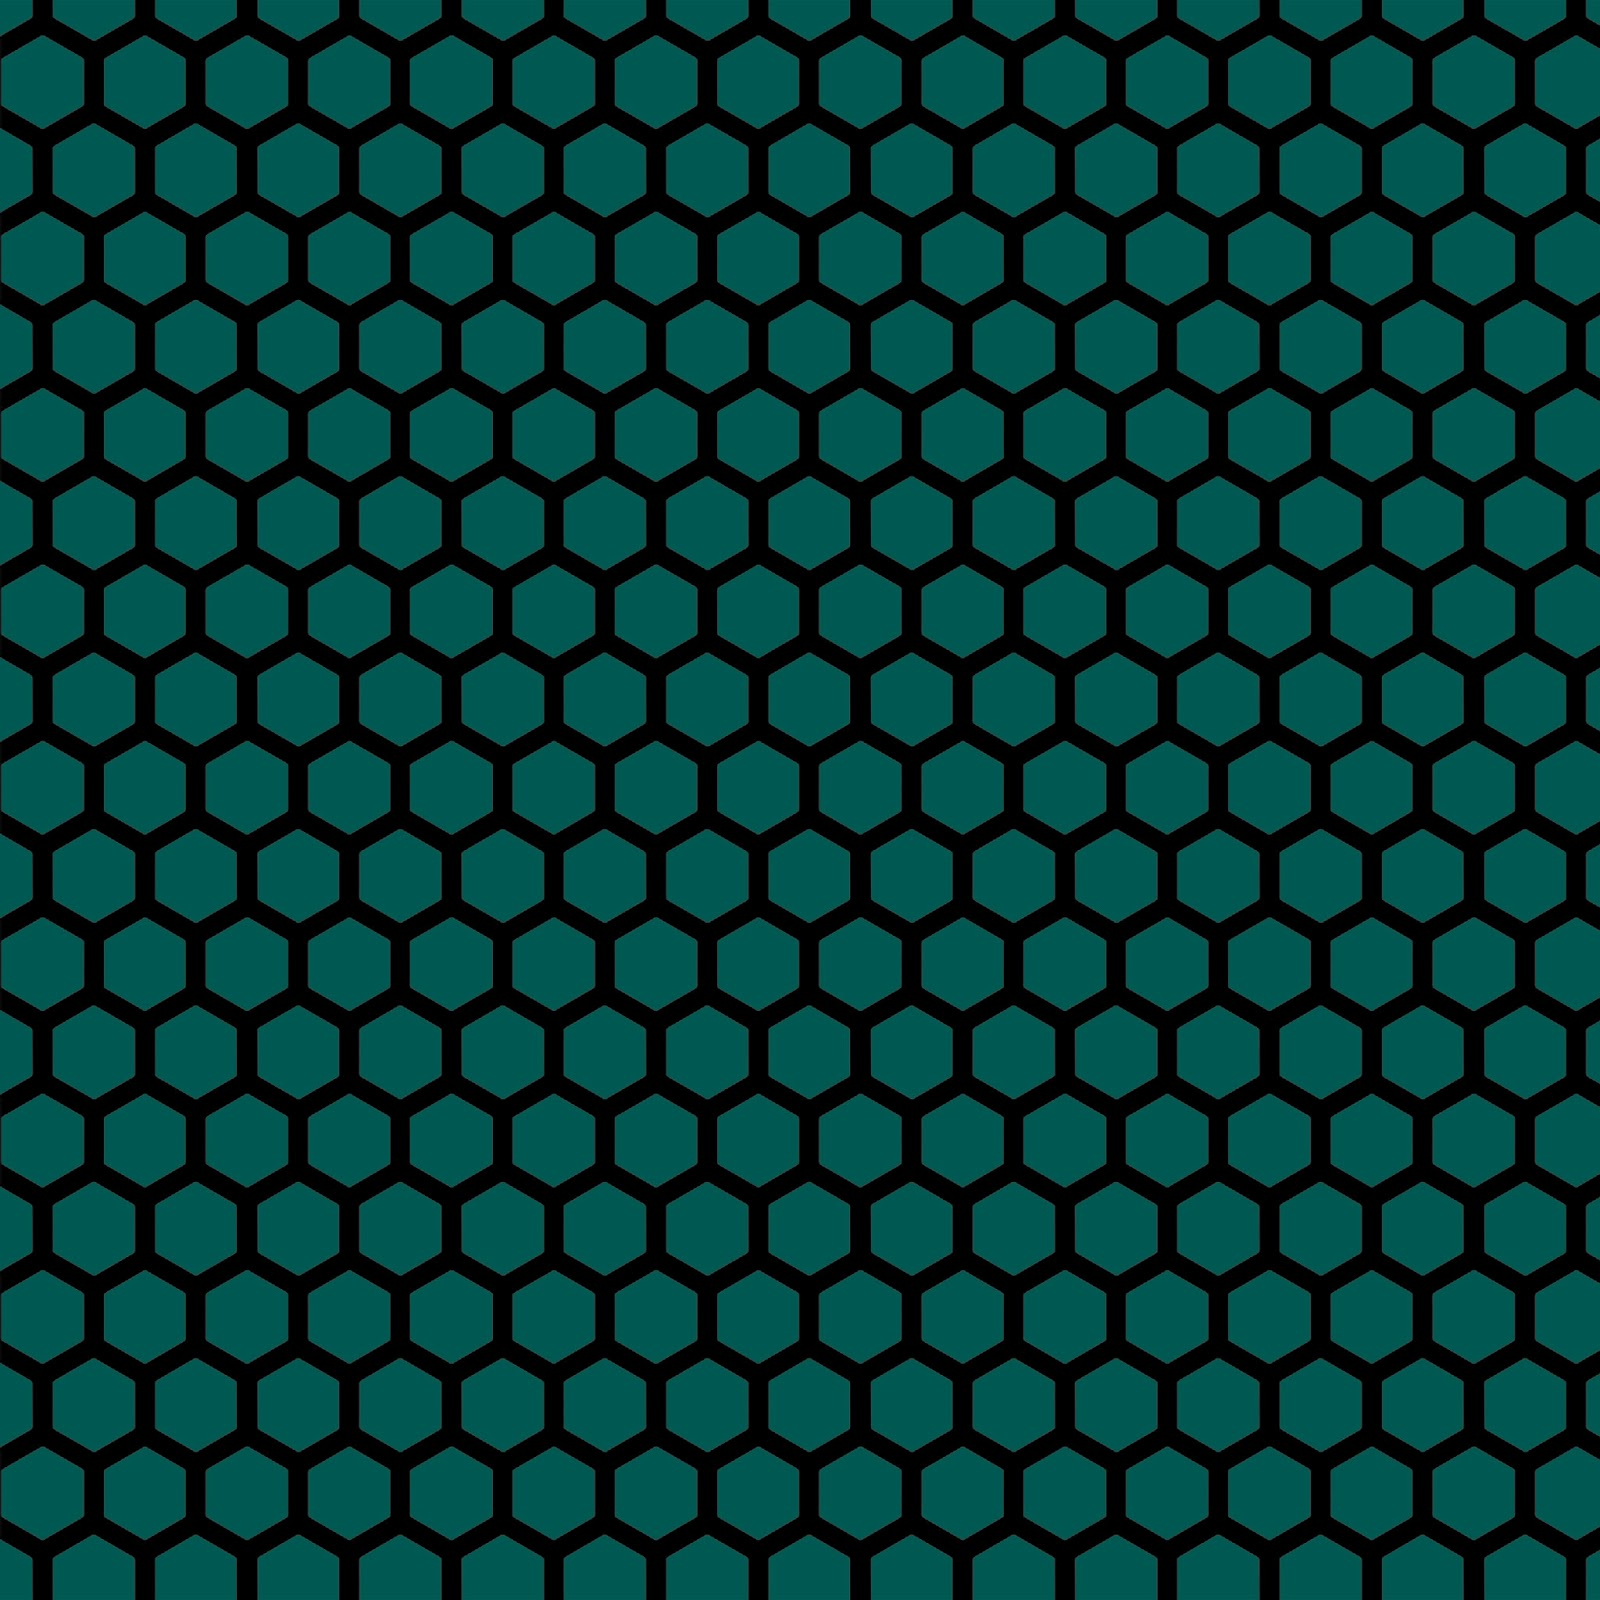 Doodlecraft 15 Colorful hues Hexagon Honeycomb Background Printables 1600x1600